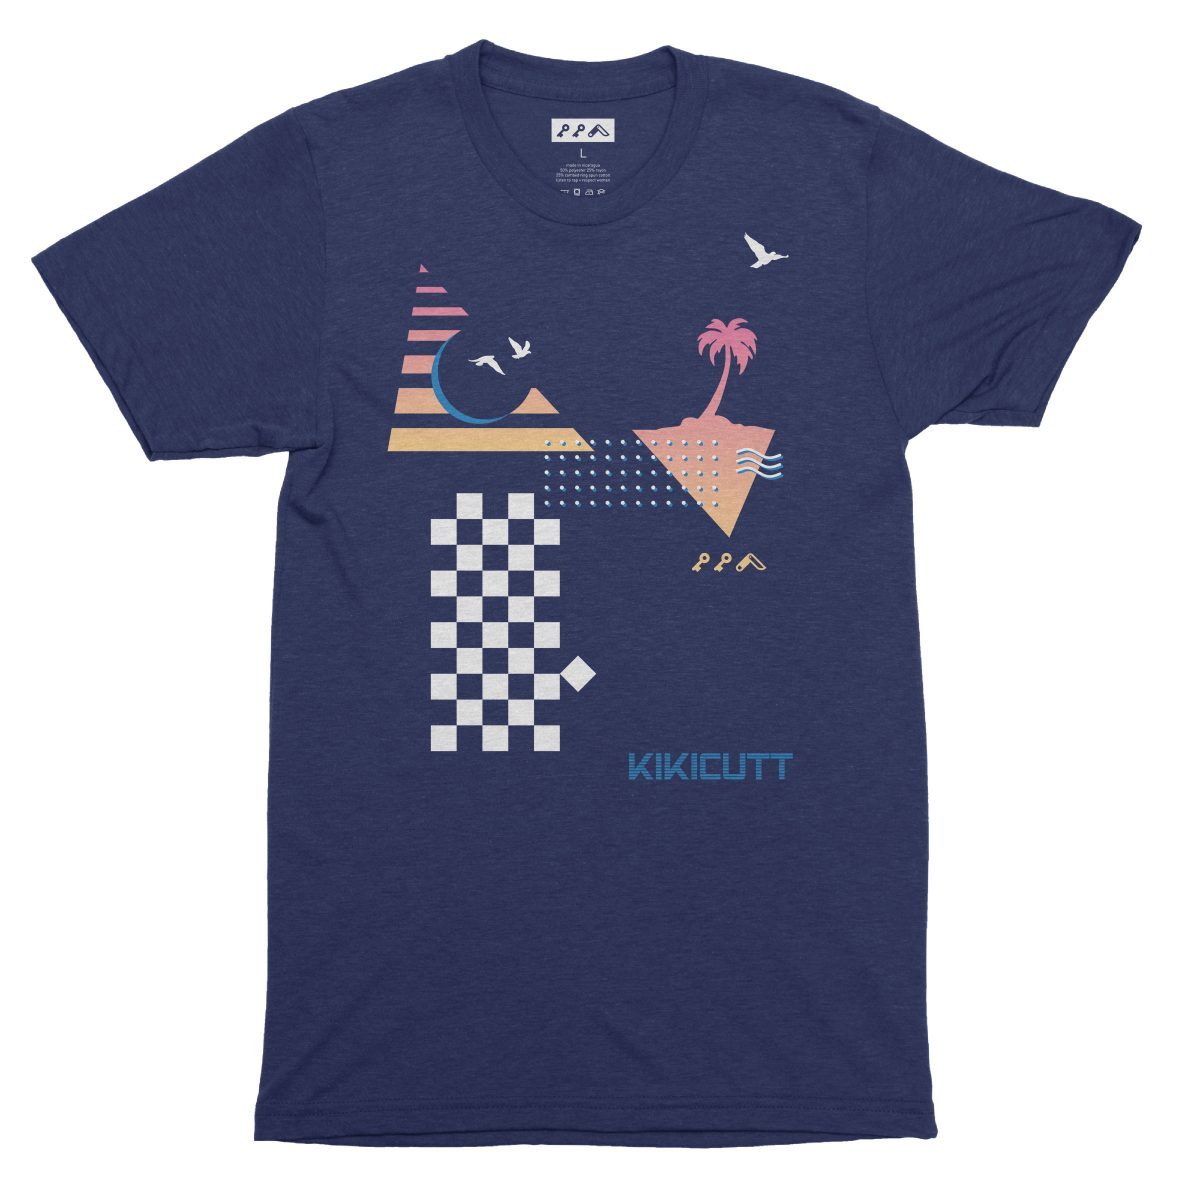 CHECKERED PAST retro throwback 80s style design graphic tee in navy